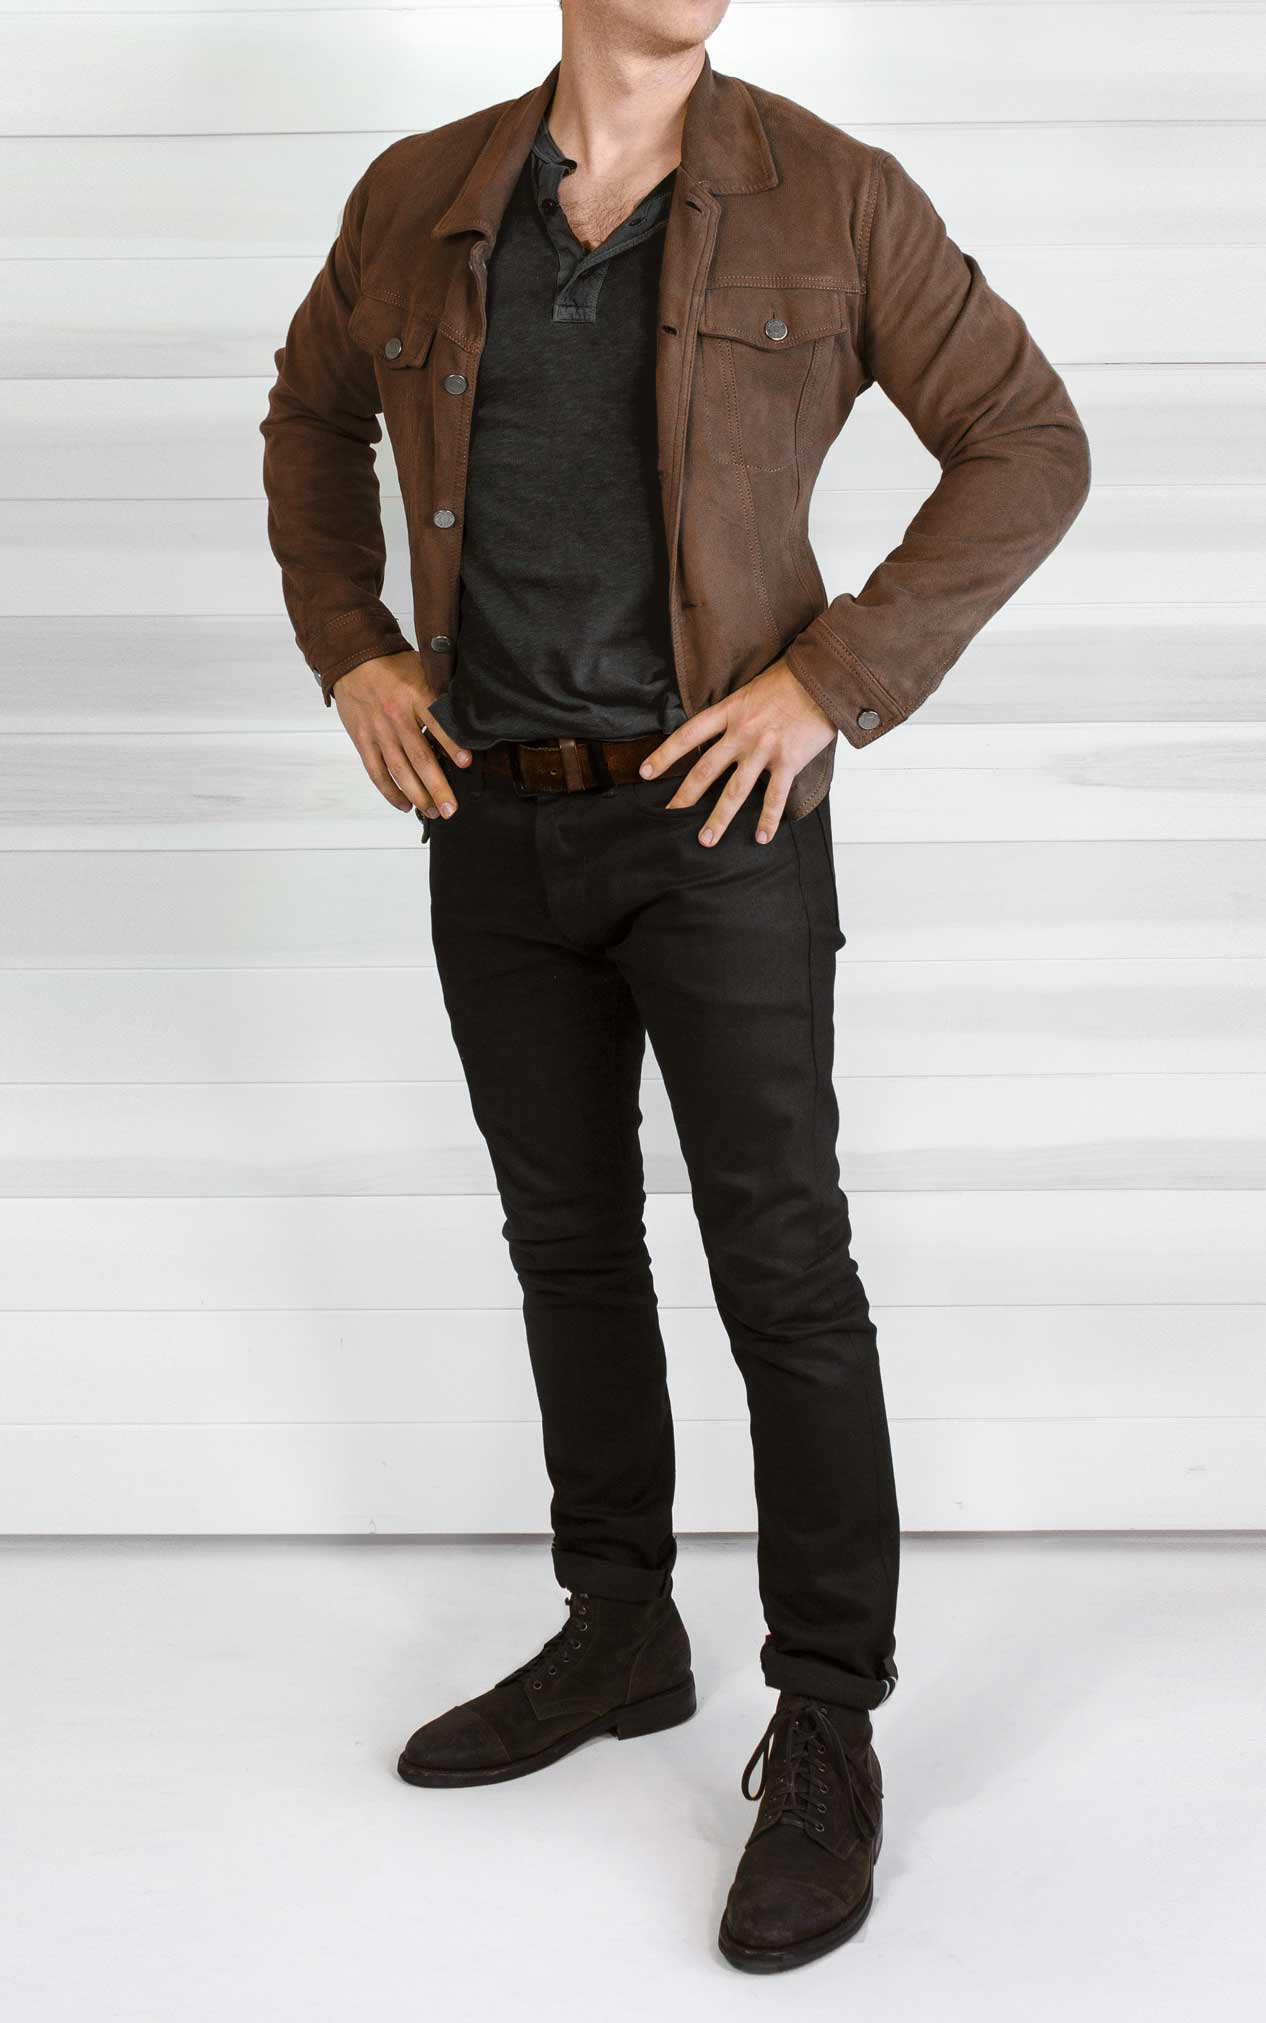 han solo inspired outfit from Solo brown jacket